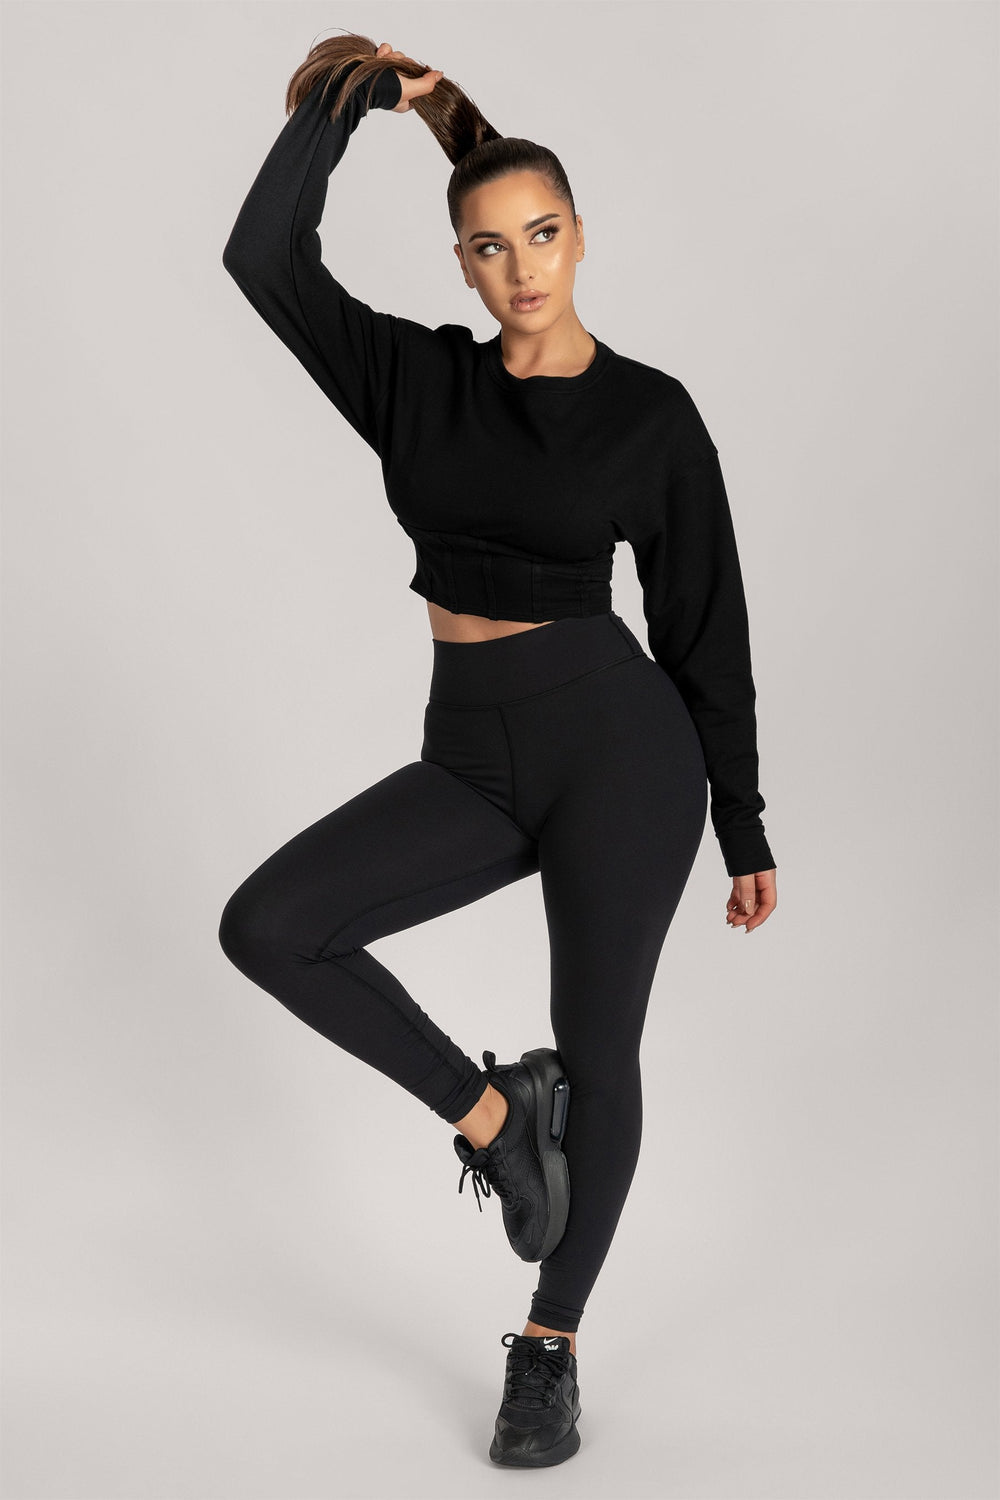 Hestia Panelled Cropped Jumper - Black - MESHKI ?id=16083065110603